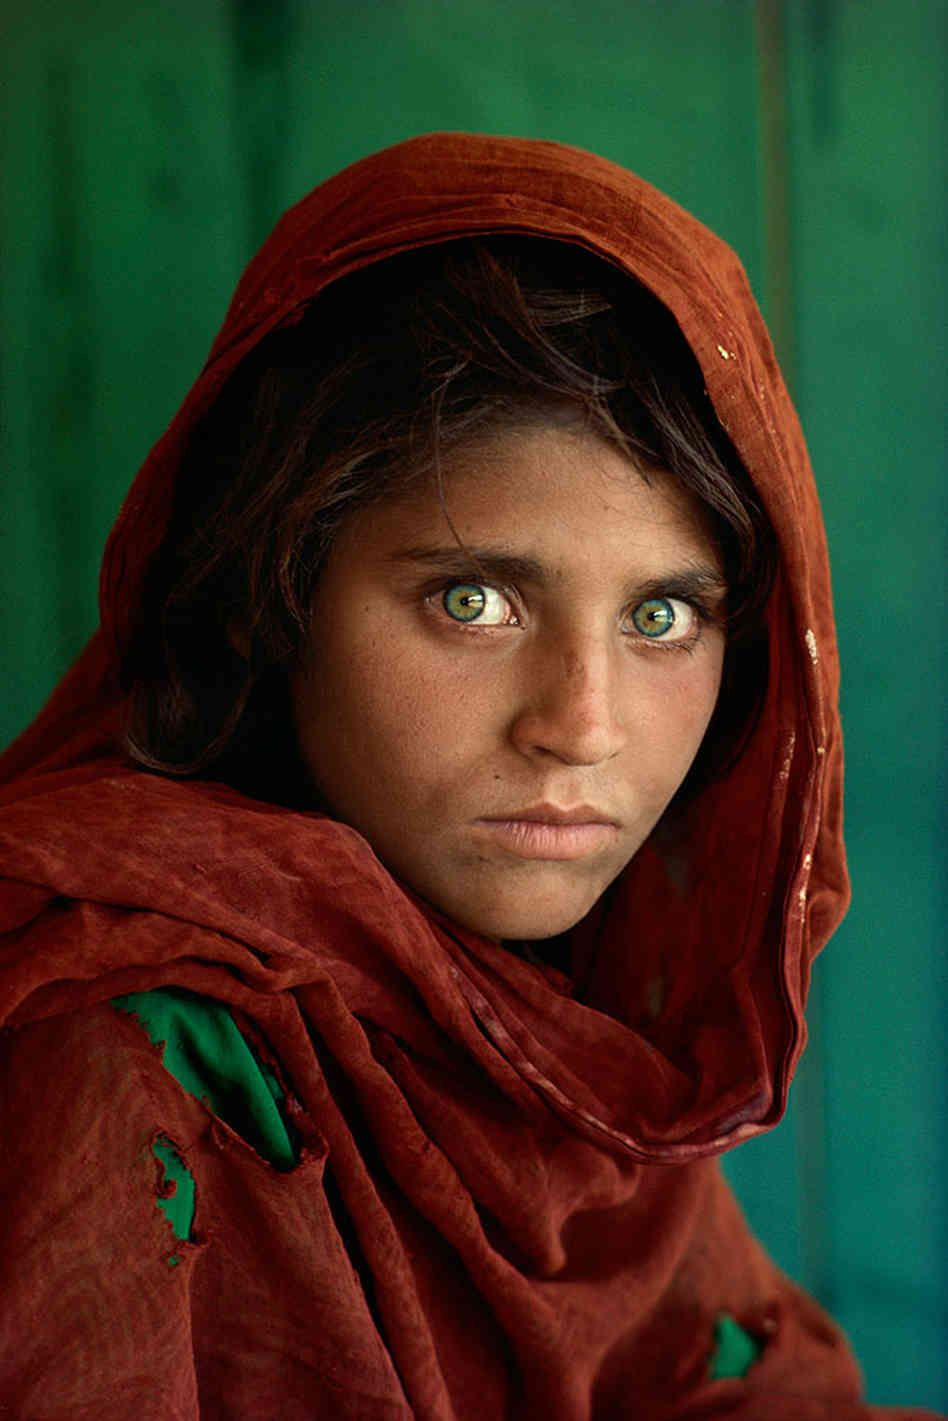 Top 10 World S Most Famous Photos Editors Choice Top Inspired Famous Portraits Afghan Girl Portrait